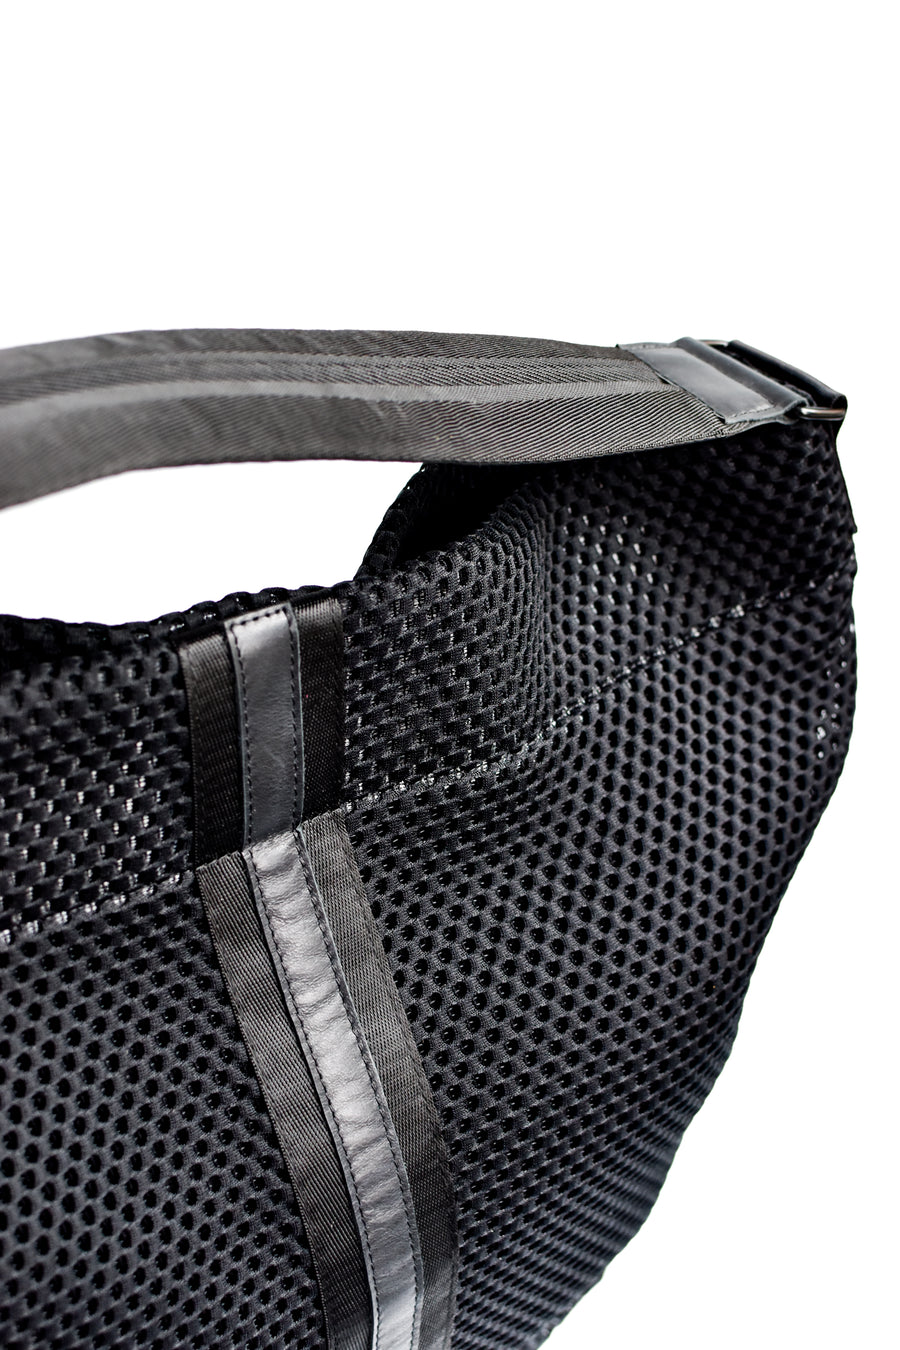 Black mesh sporty tote bag with black leather and webbing details.